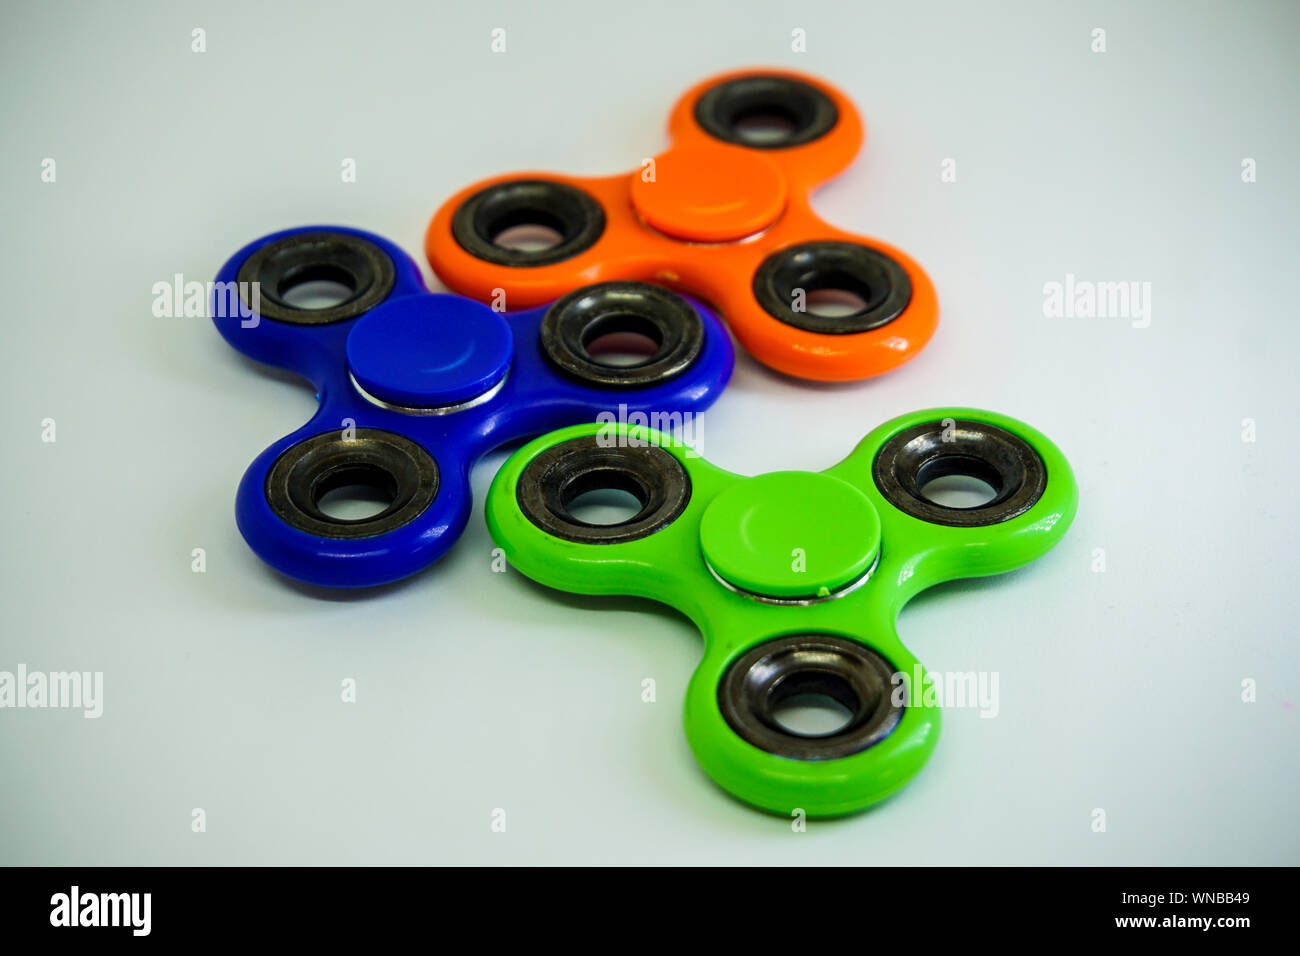 Close-up Of Colorful Fidget Spinners On White Table Stock Photo